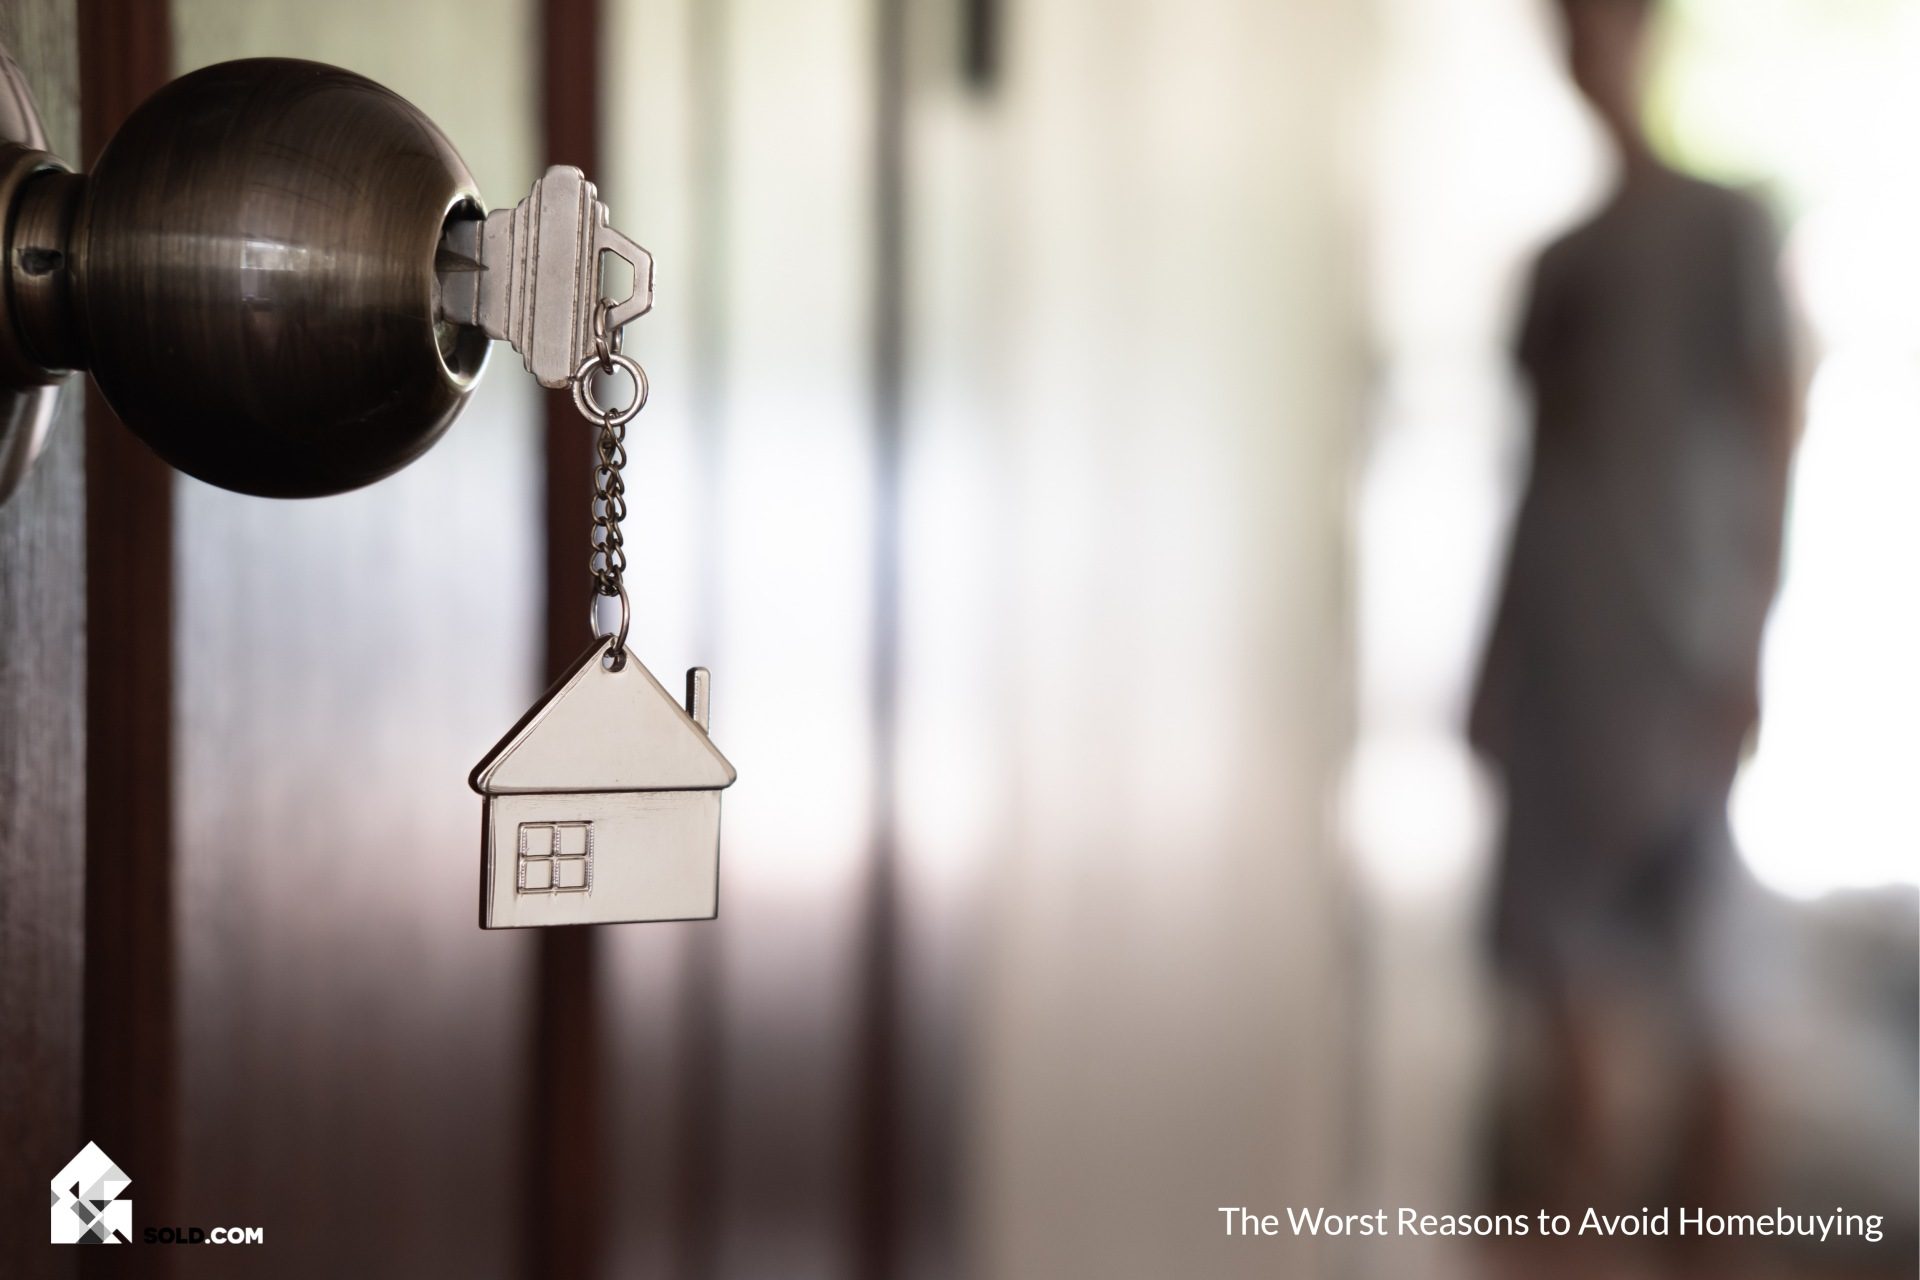 The Worst Reasons to Avoid Homebuying